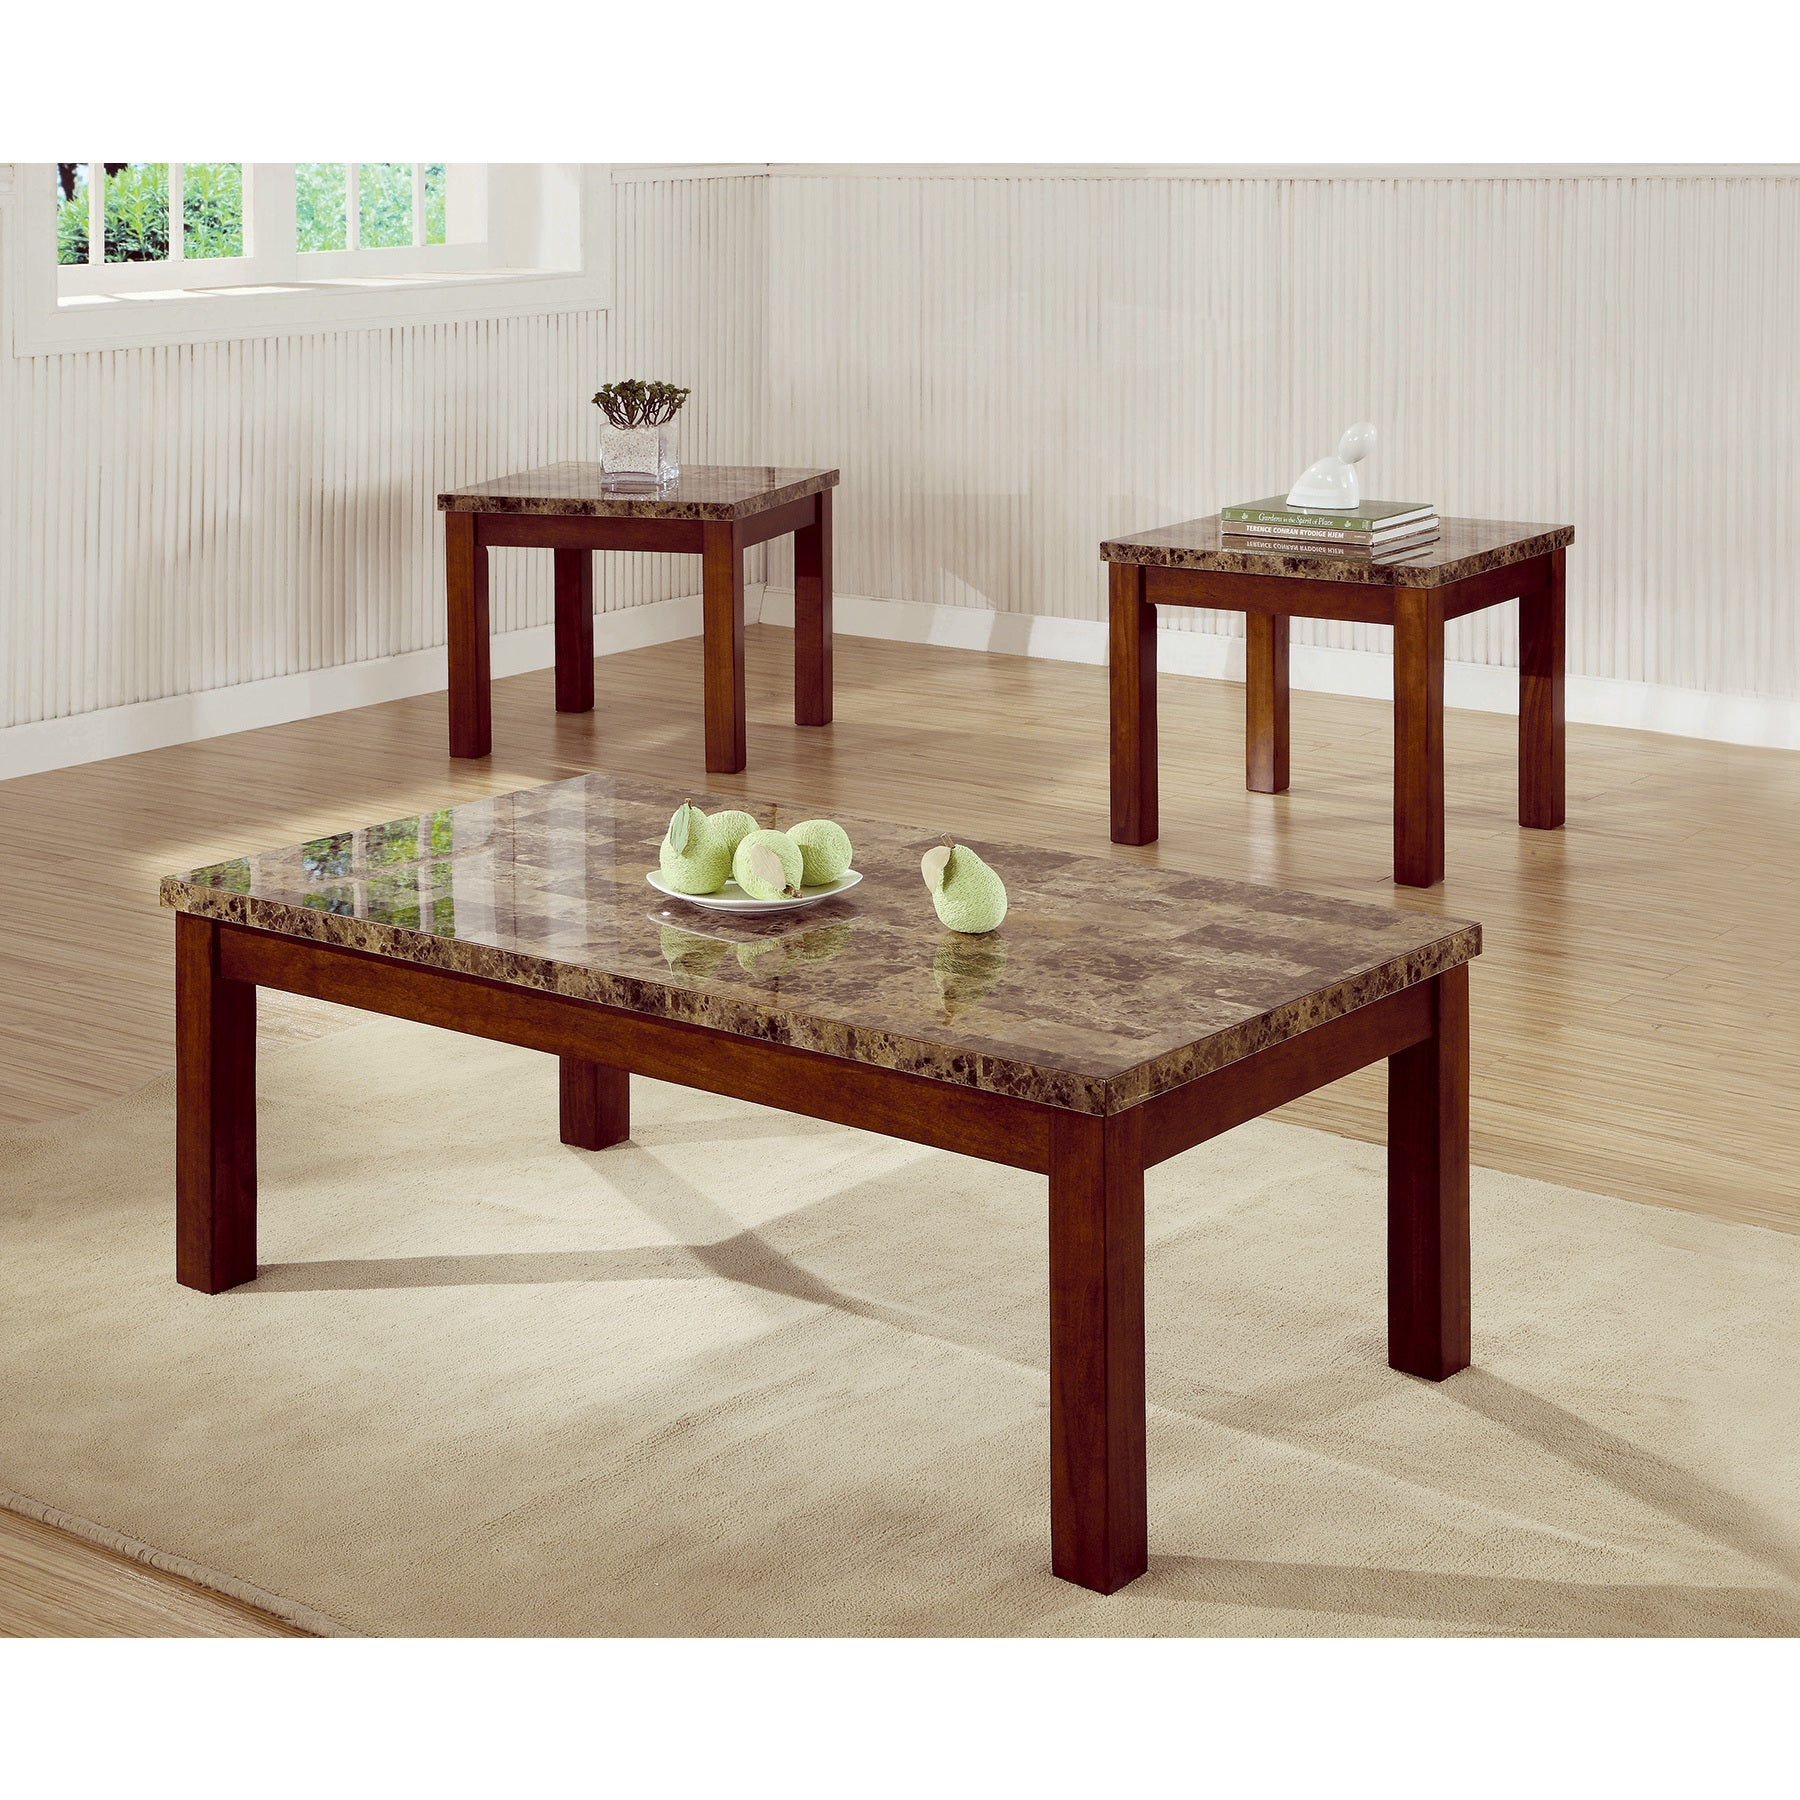 coaster company cherry faux marble occasional table set free looking top end finish shipping today porter side stanley furniture caroline collection standard dining room size